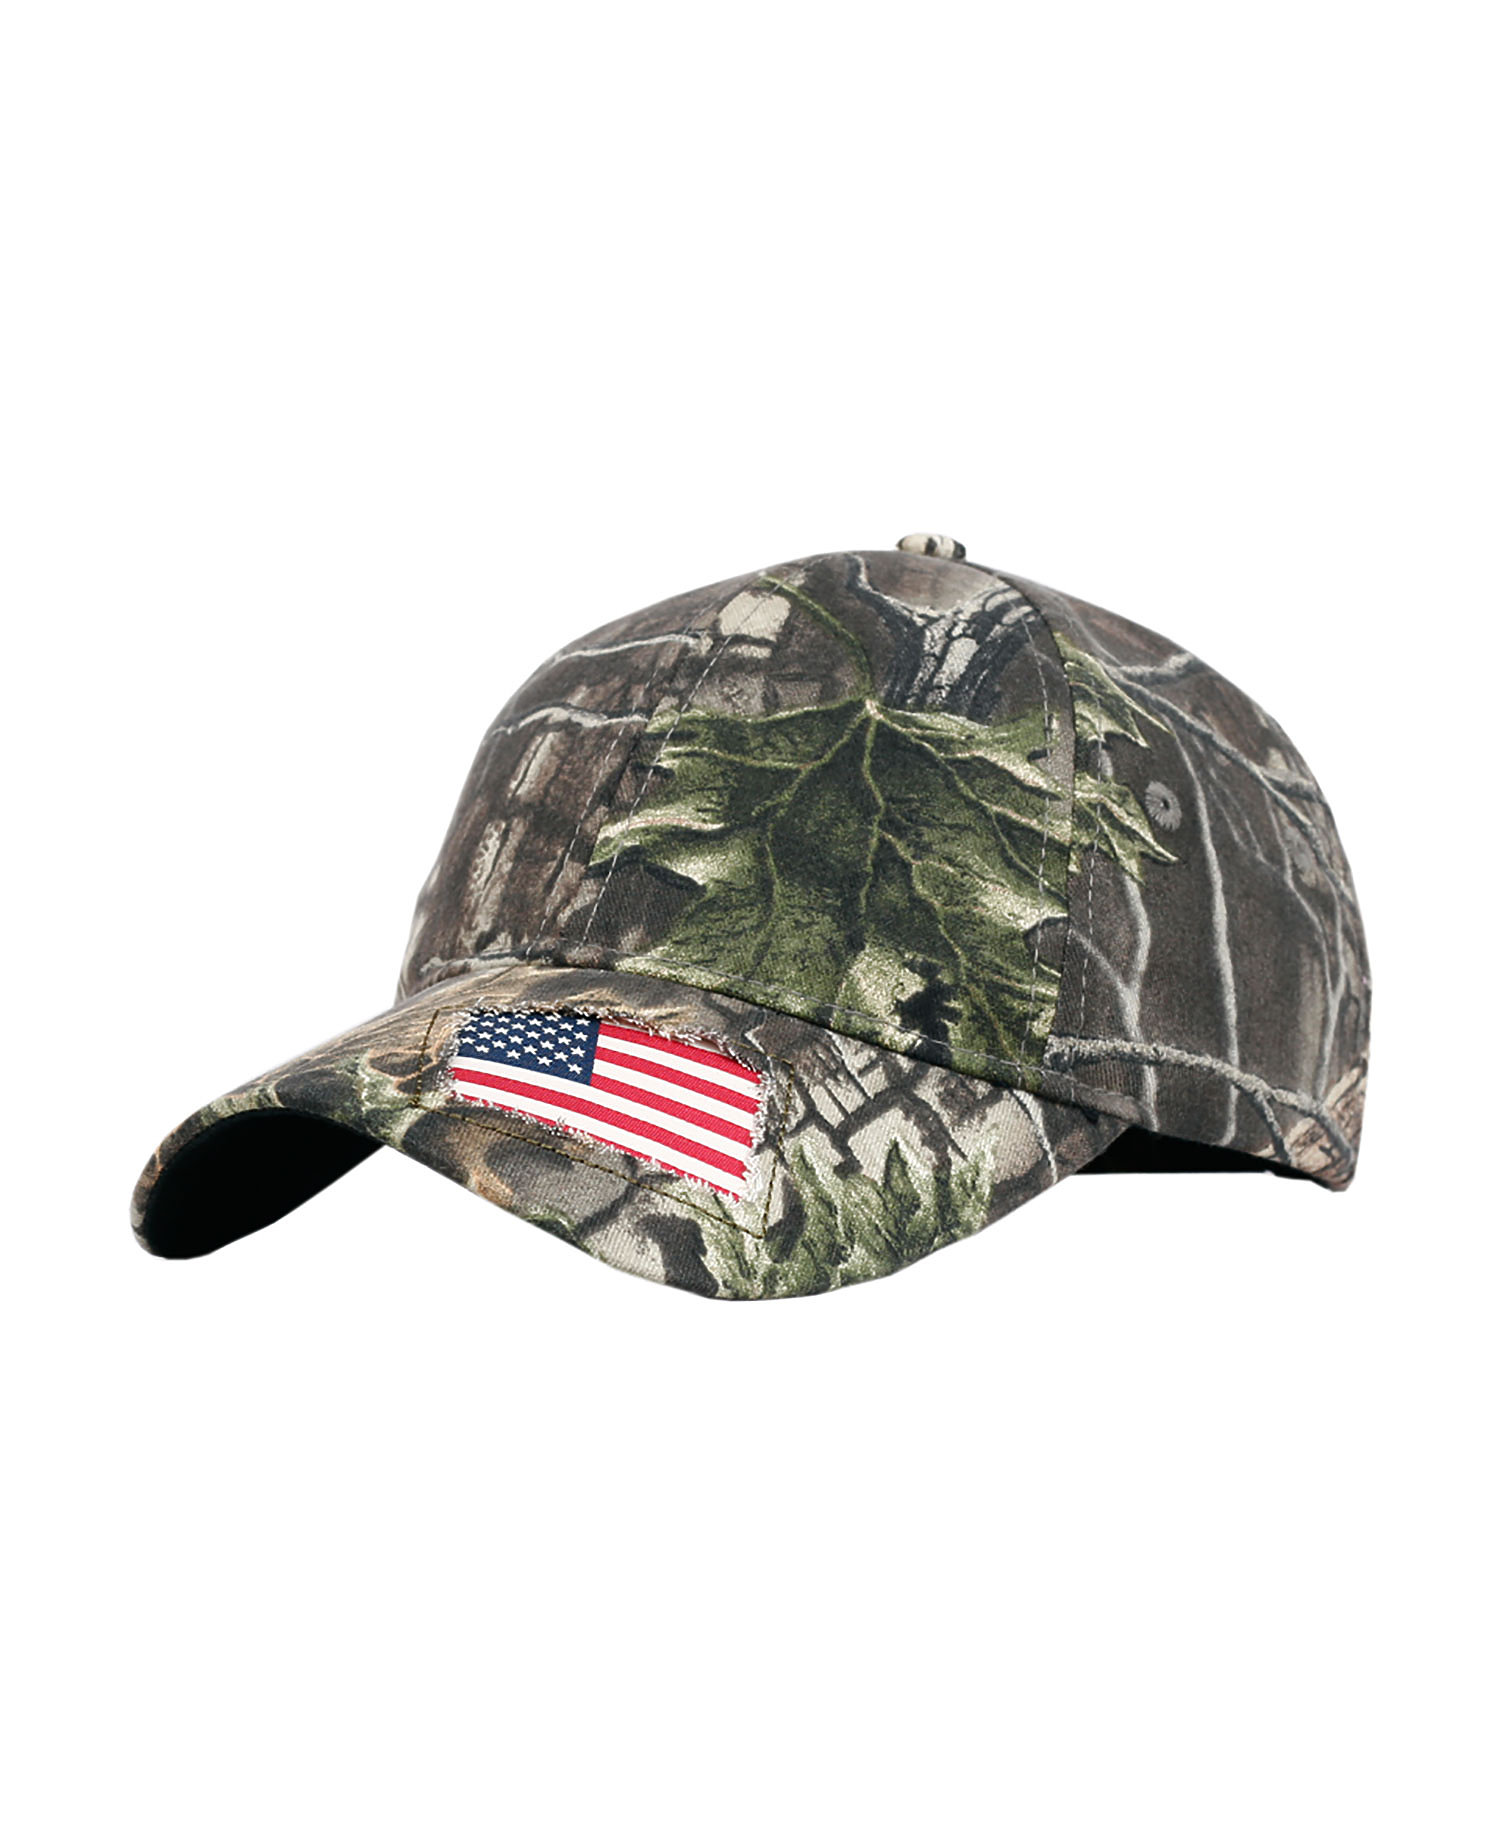 Fahrenheit F0792 - Superflauge Camo with Woven Flag ...